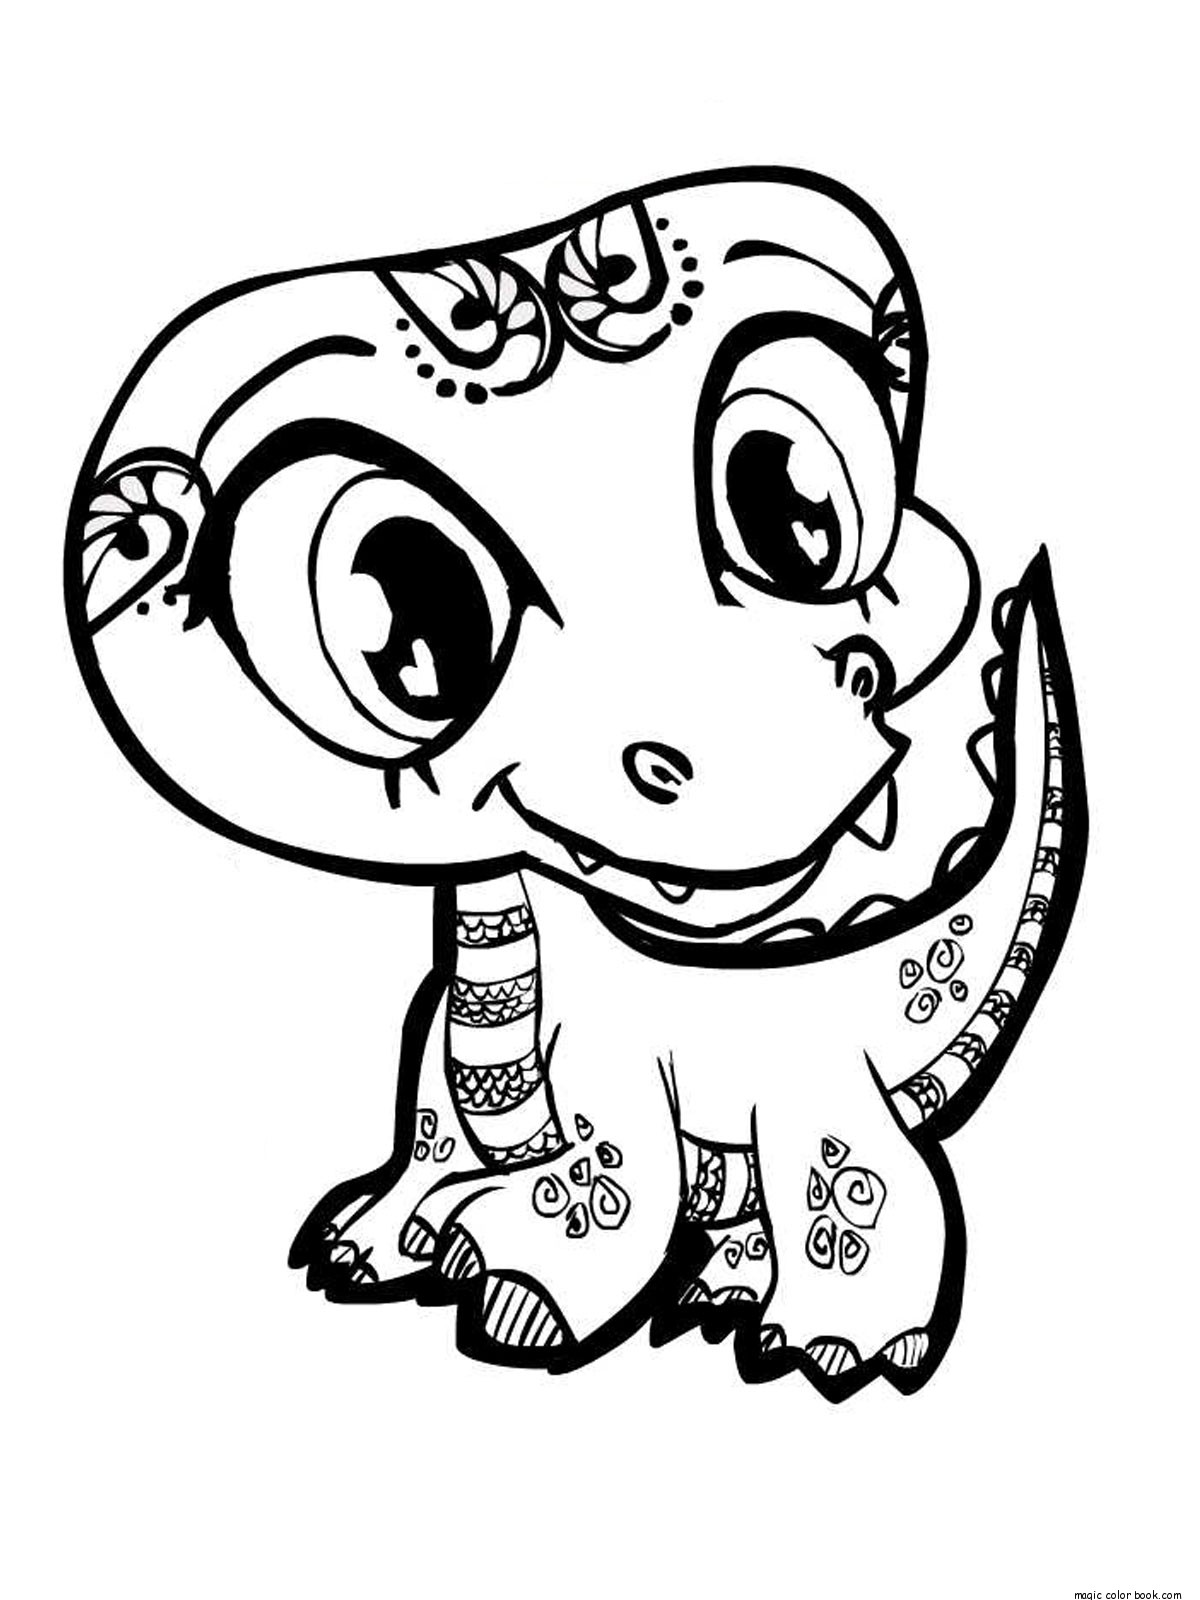 pet shop coloring pages to download and print for free